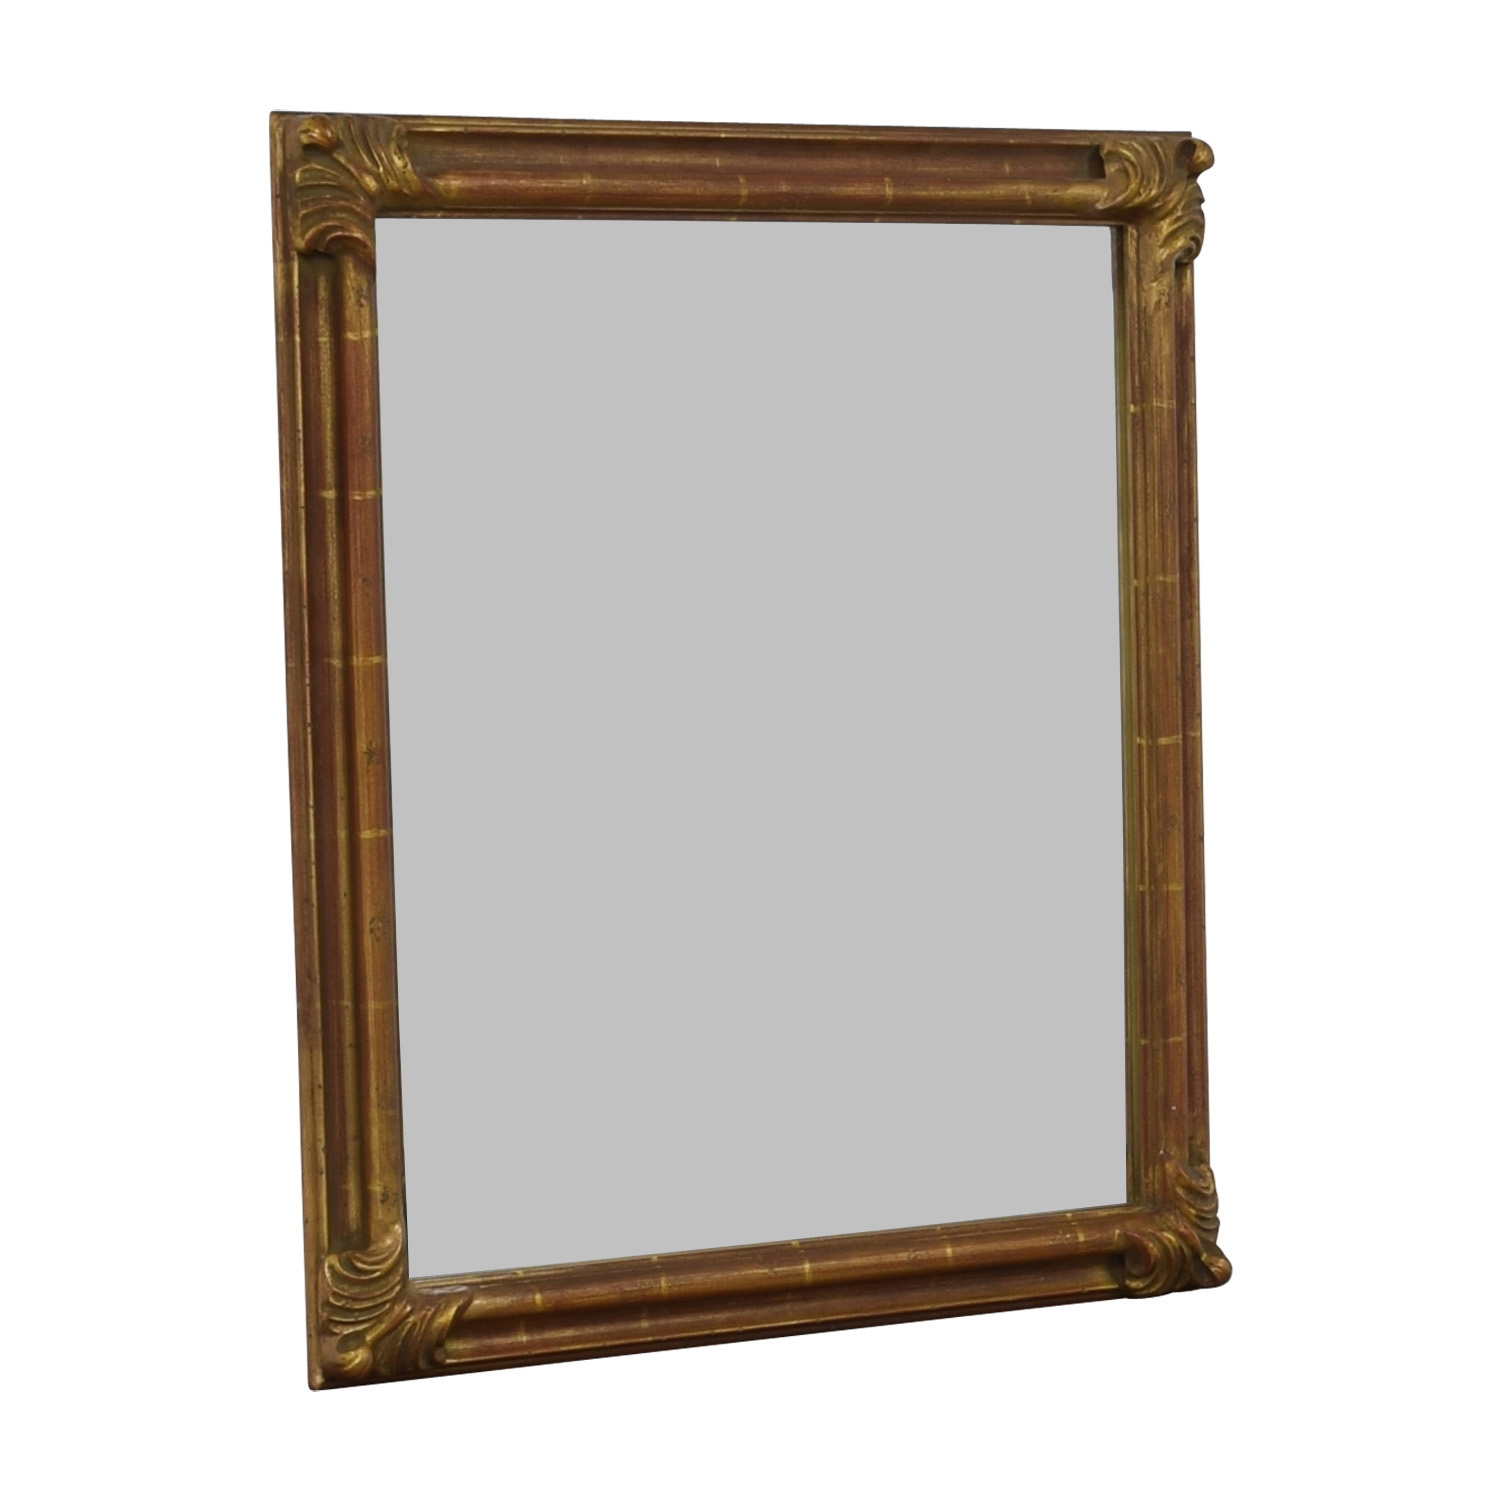 Pier 1 Imports Distressed Gold Wall Mirror / Mirrors